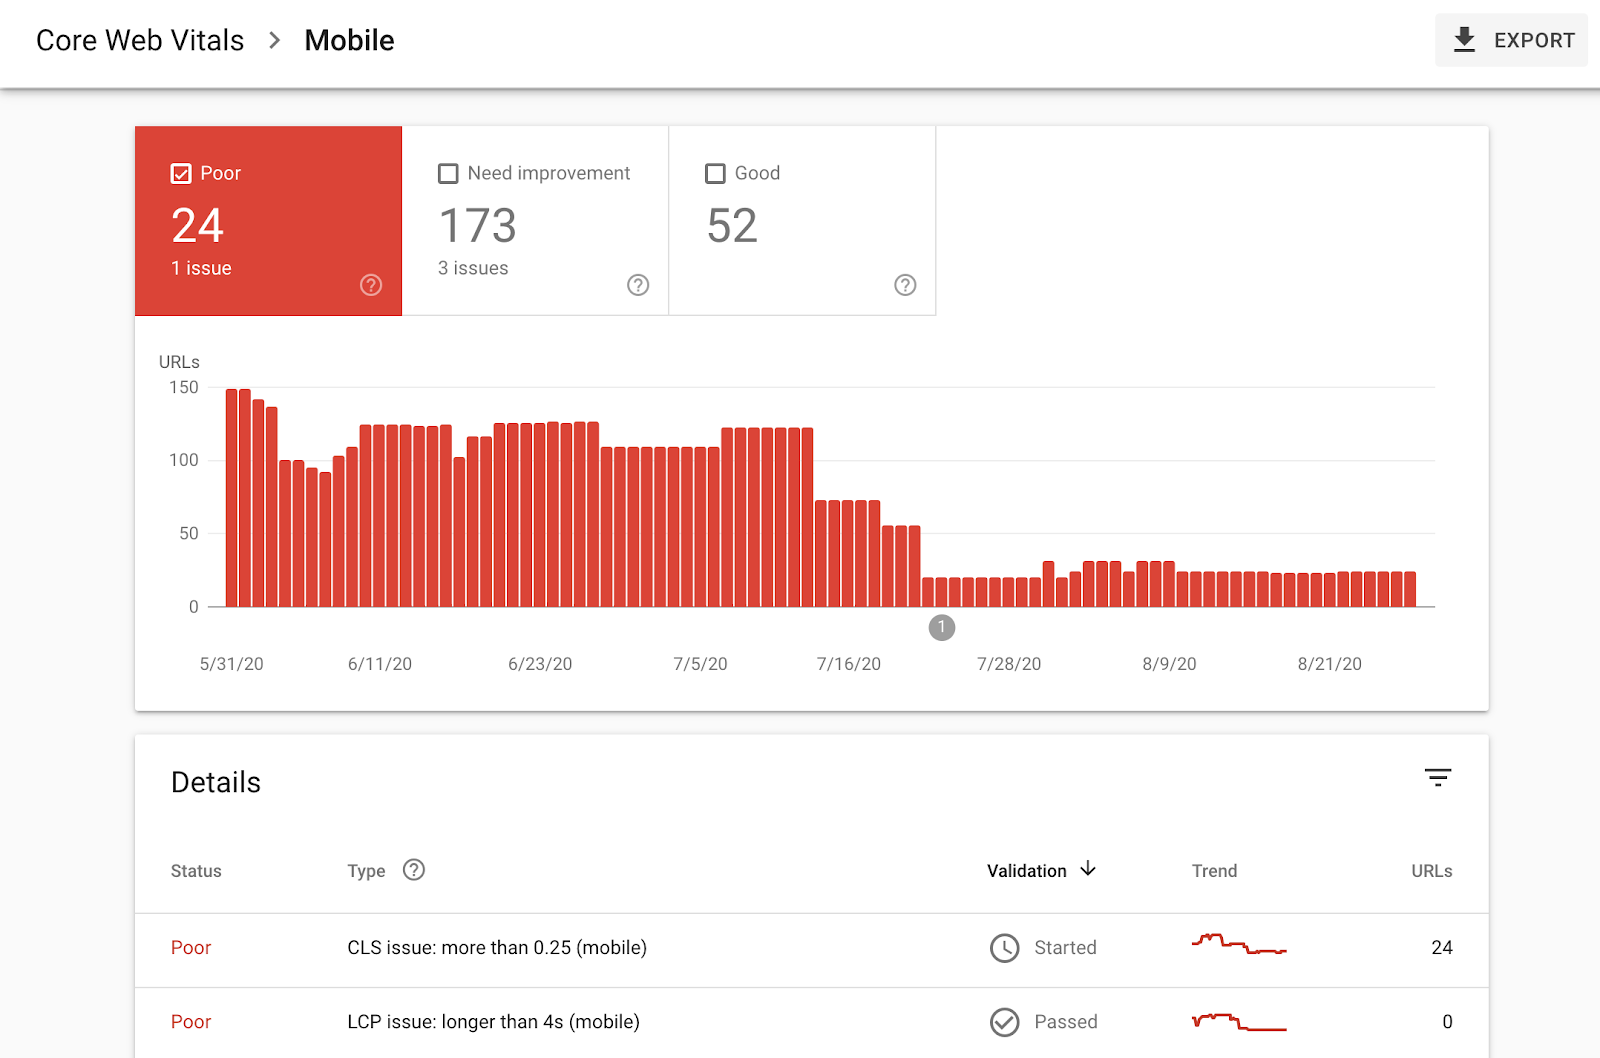 Mobile Core Web Vital issues reported by Search Console